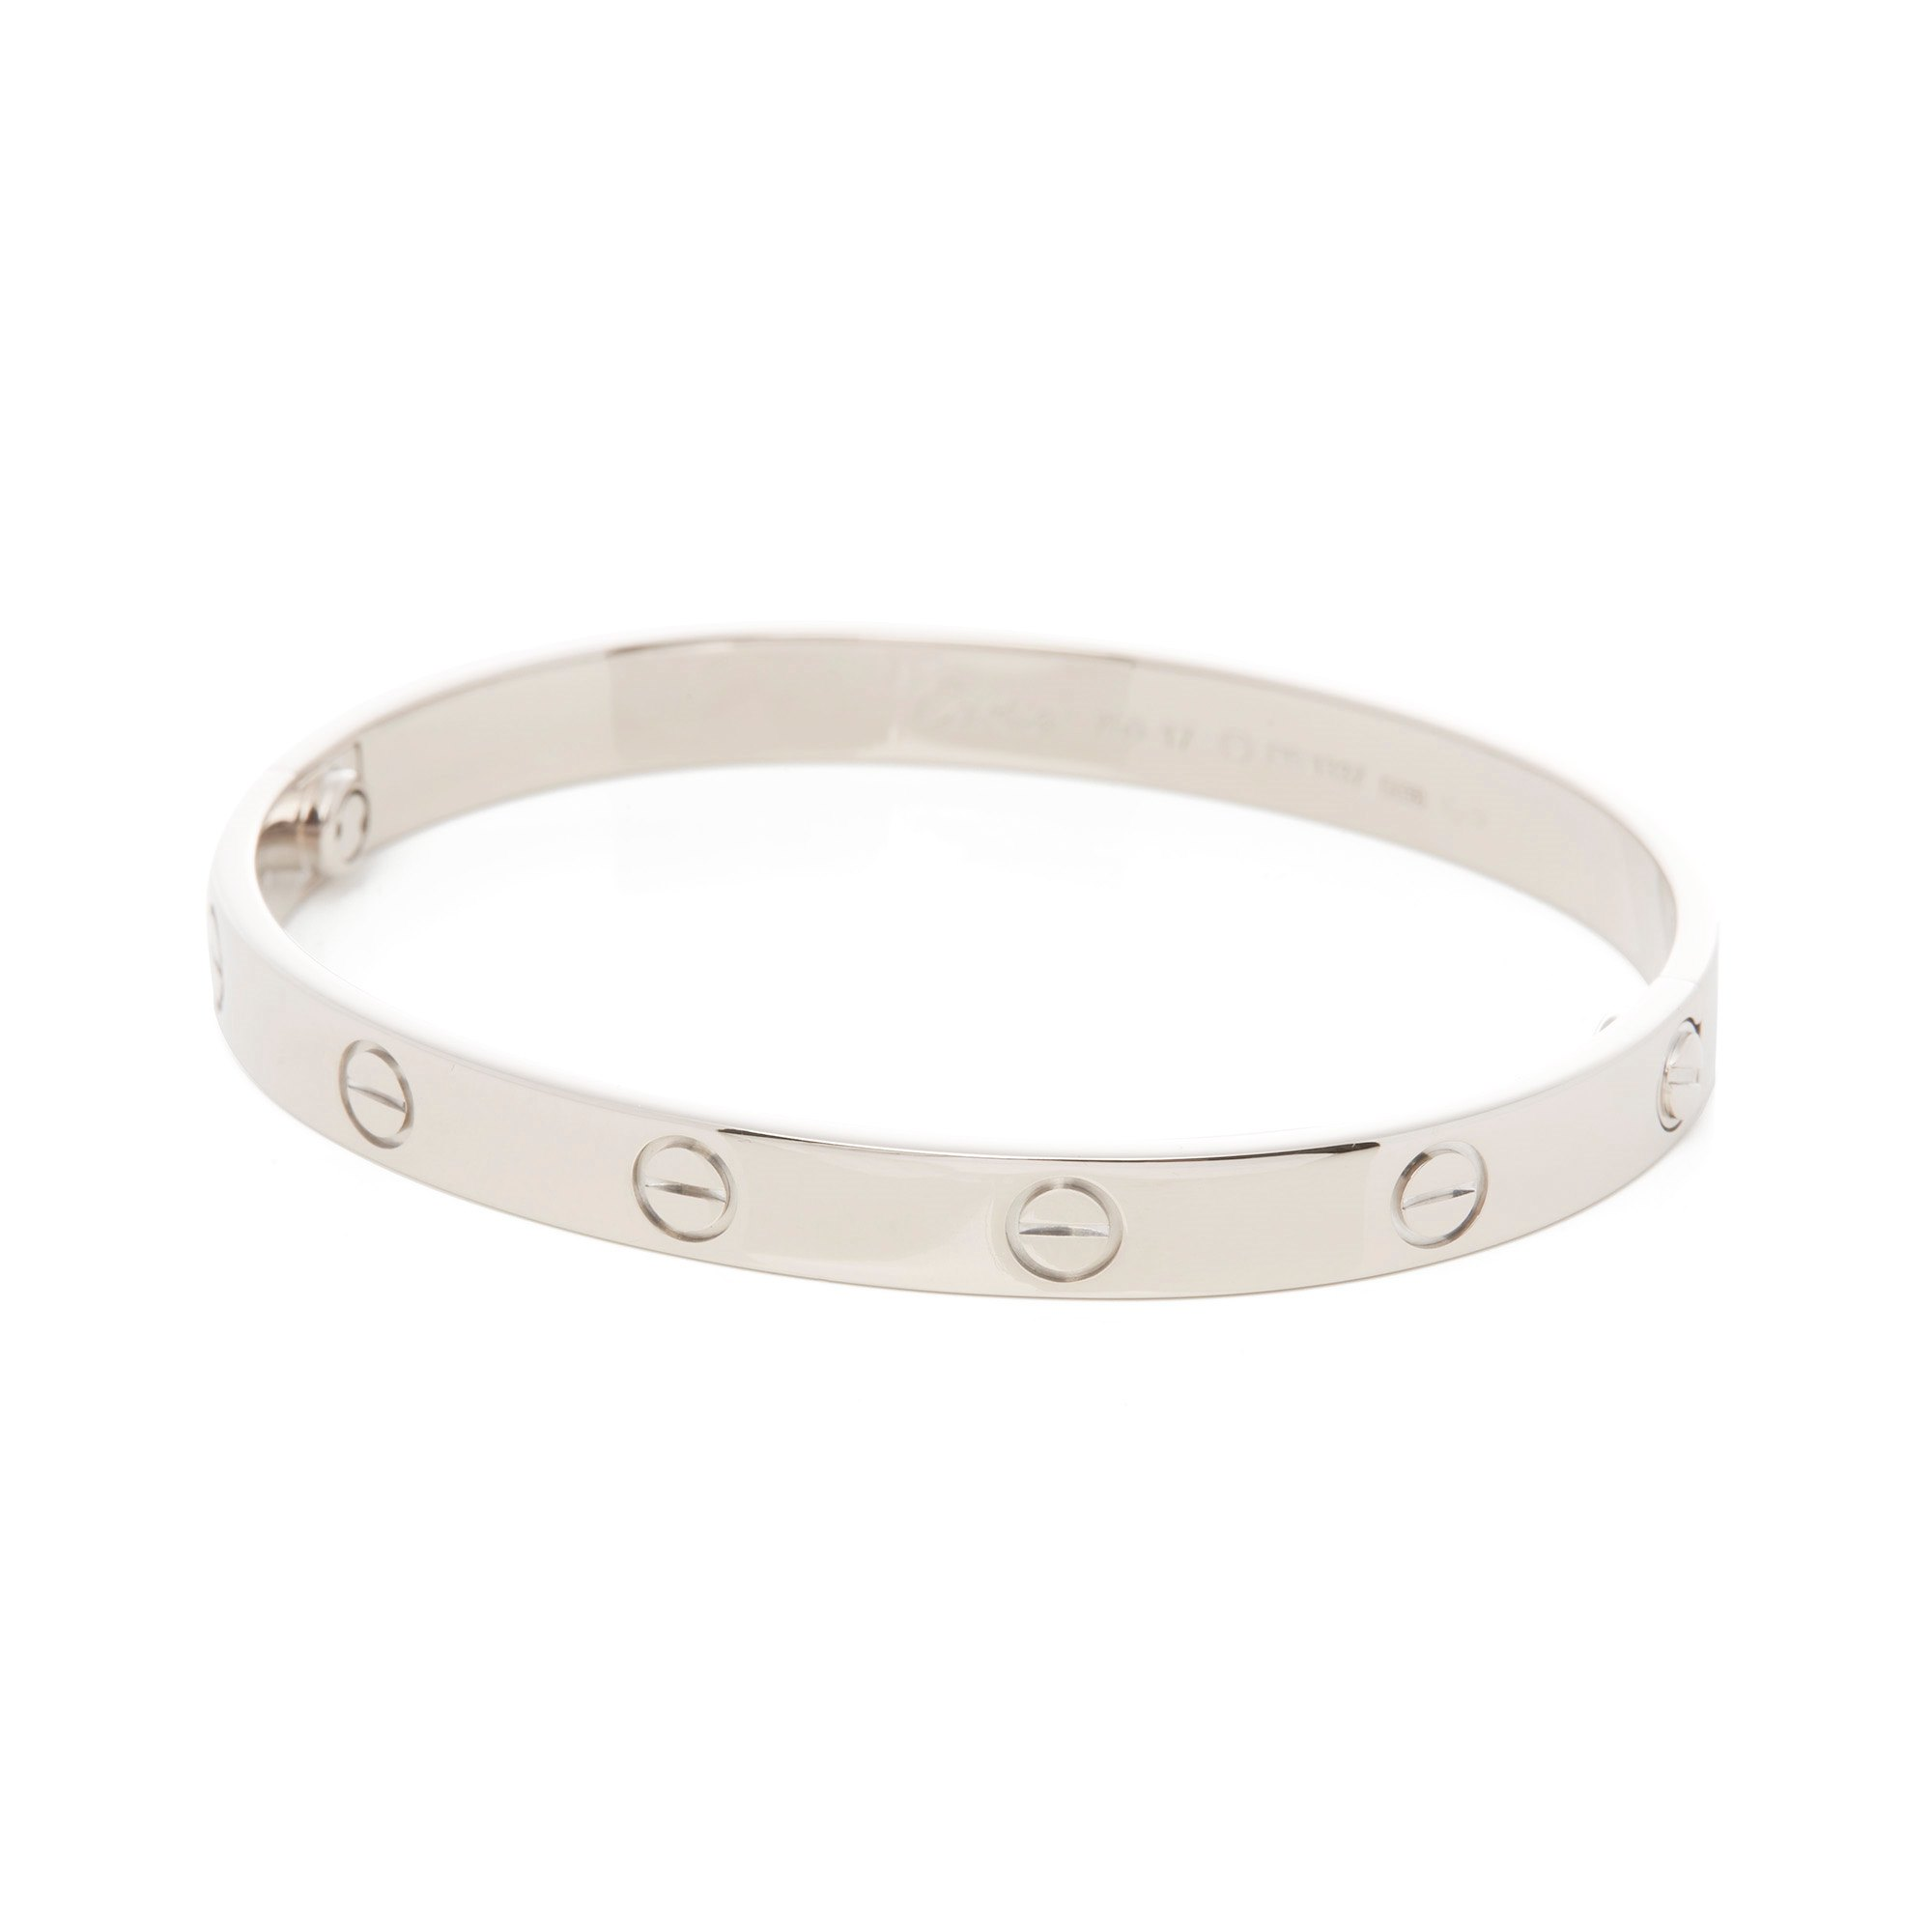 Cartier 18k White Gold Love Wedding Ring